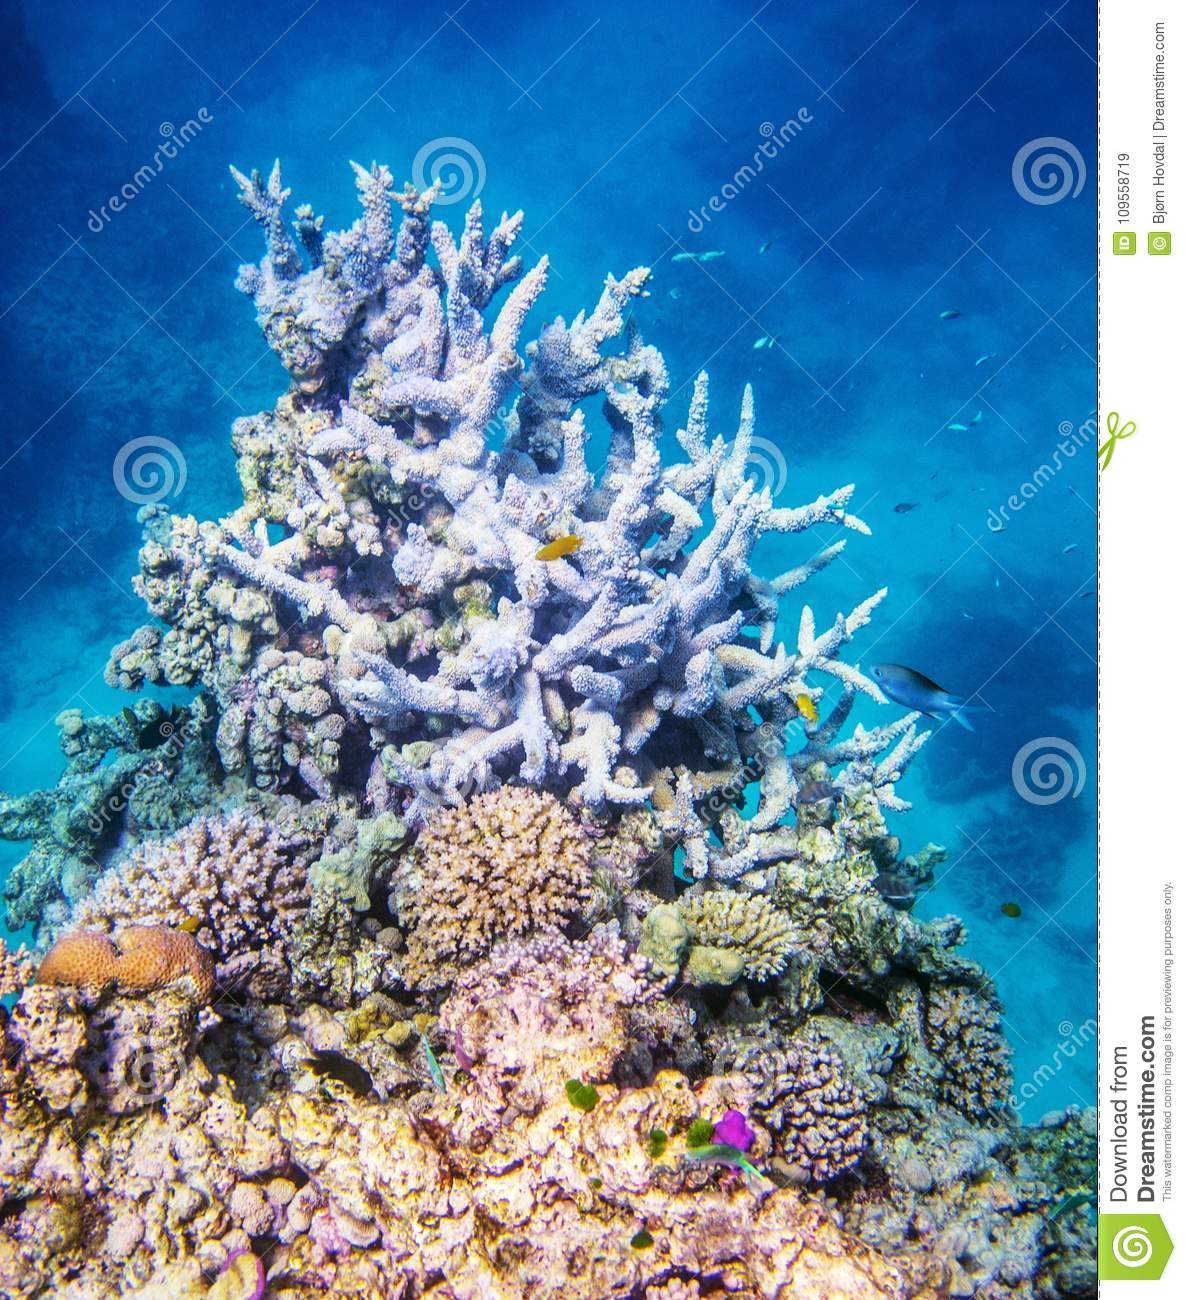 Coral Reef Background: Coral Reef On Great Barrier Reef Stock Image